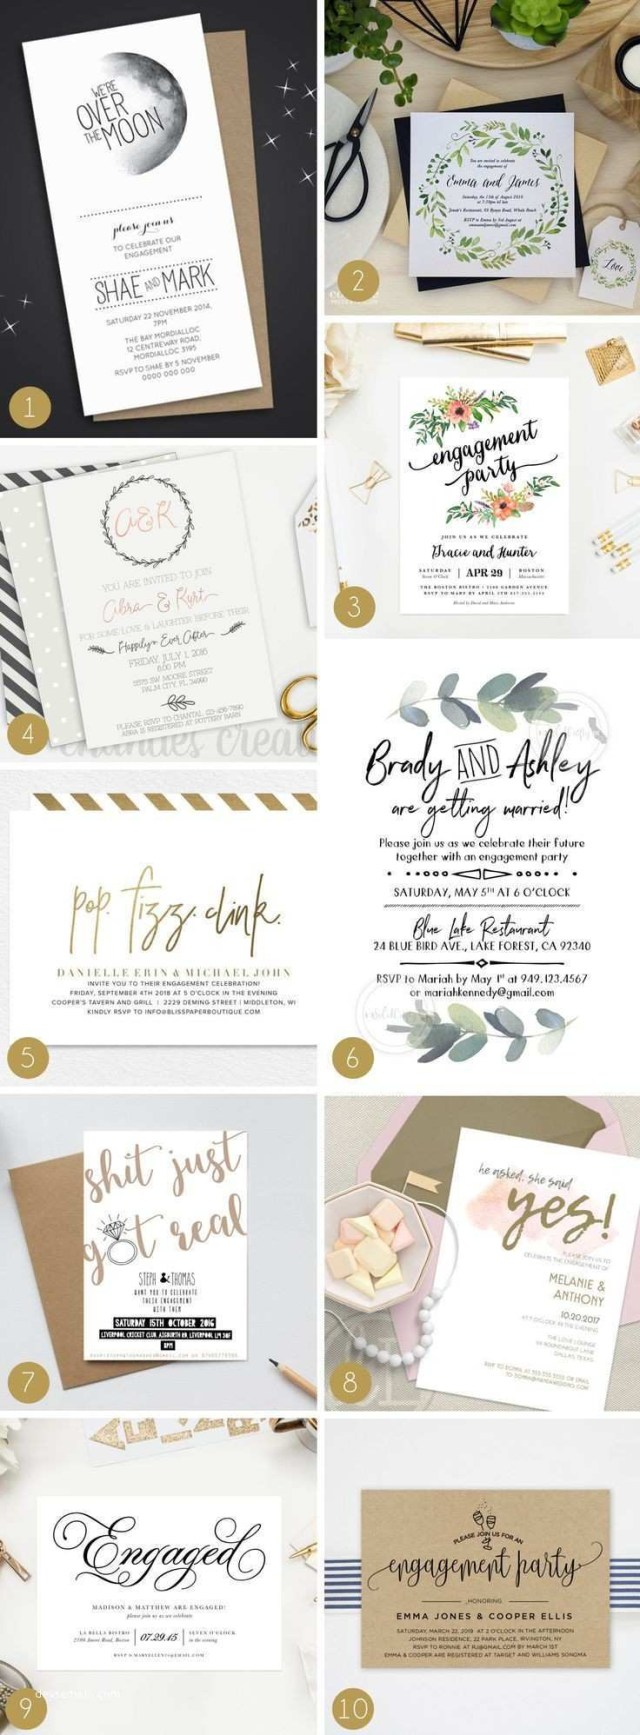 Wedding Invitations Under 1 Best Cheap Wedding Invites Under 1 Of Invitations For Under 1